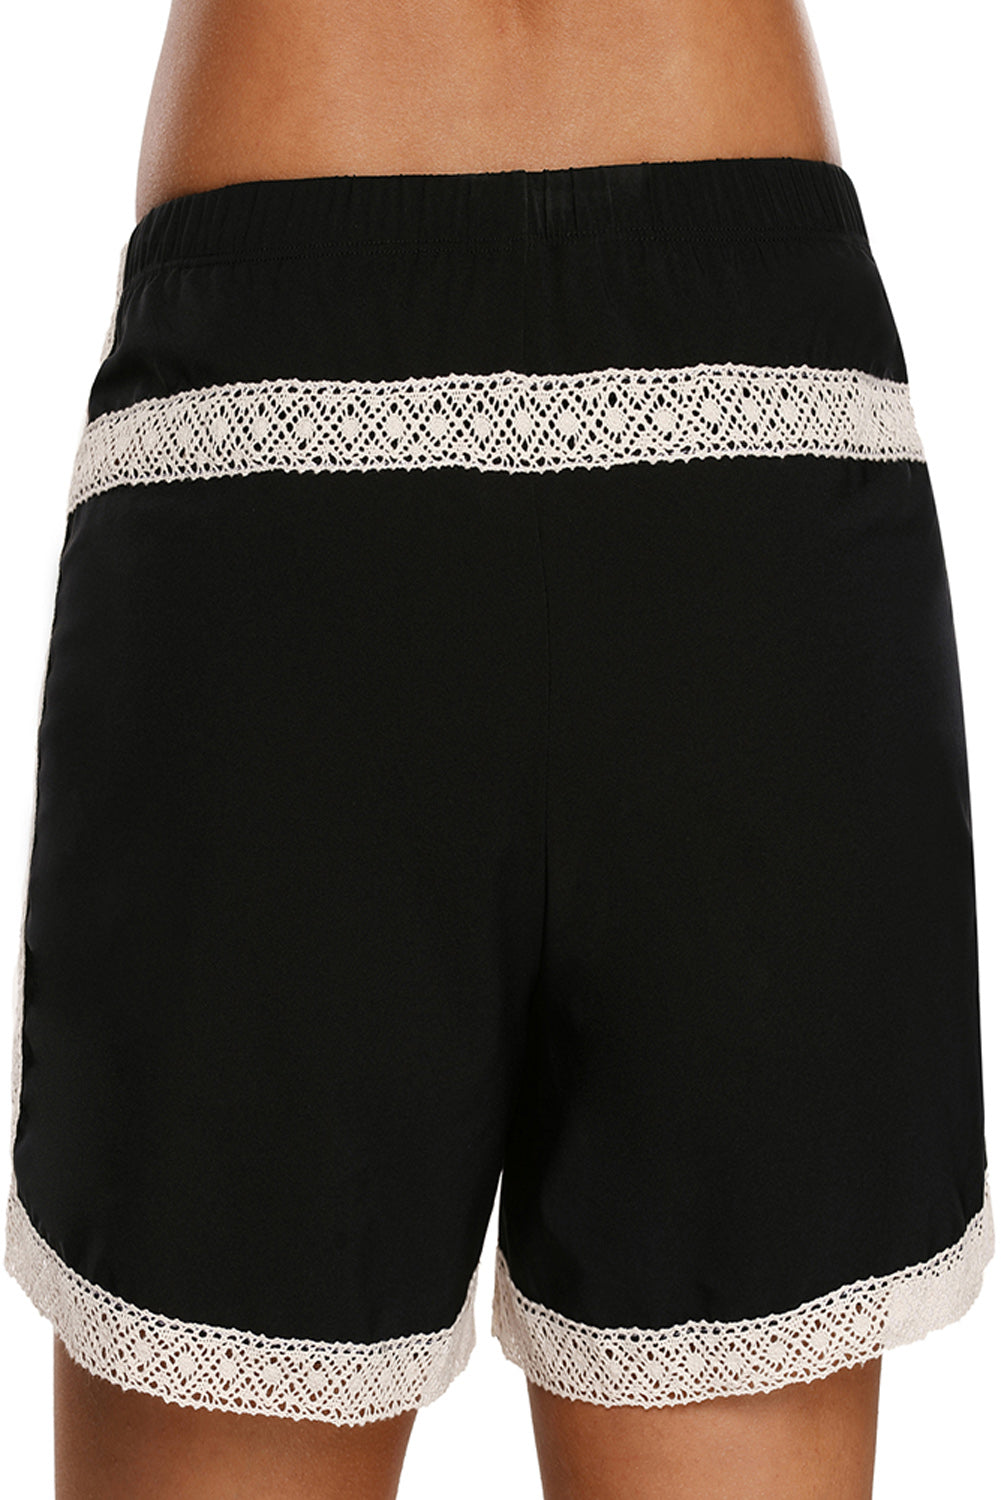 Lace Detail Black Drawstring Boardshort